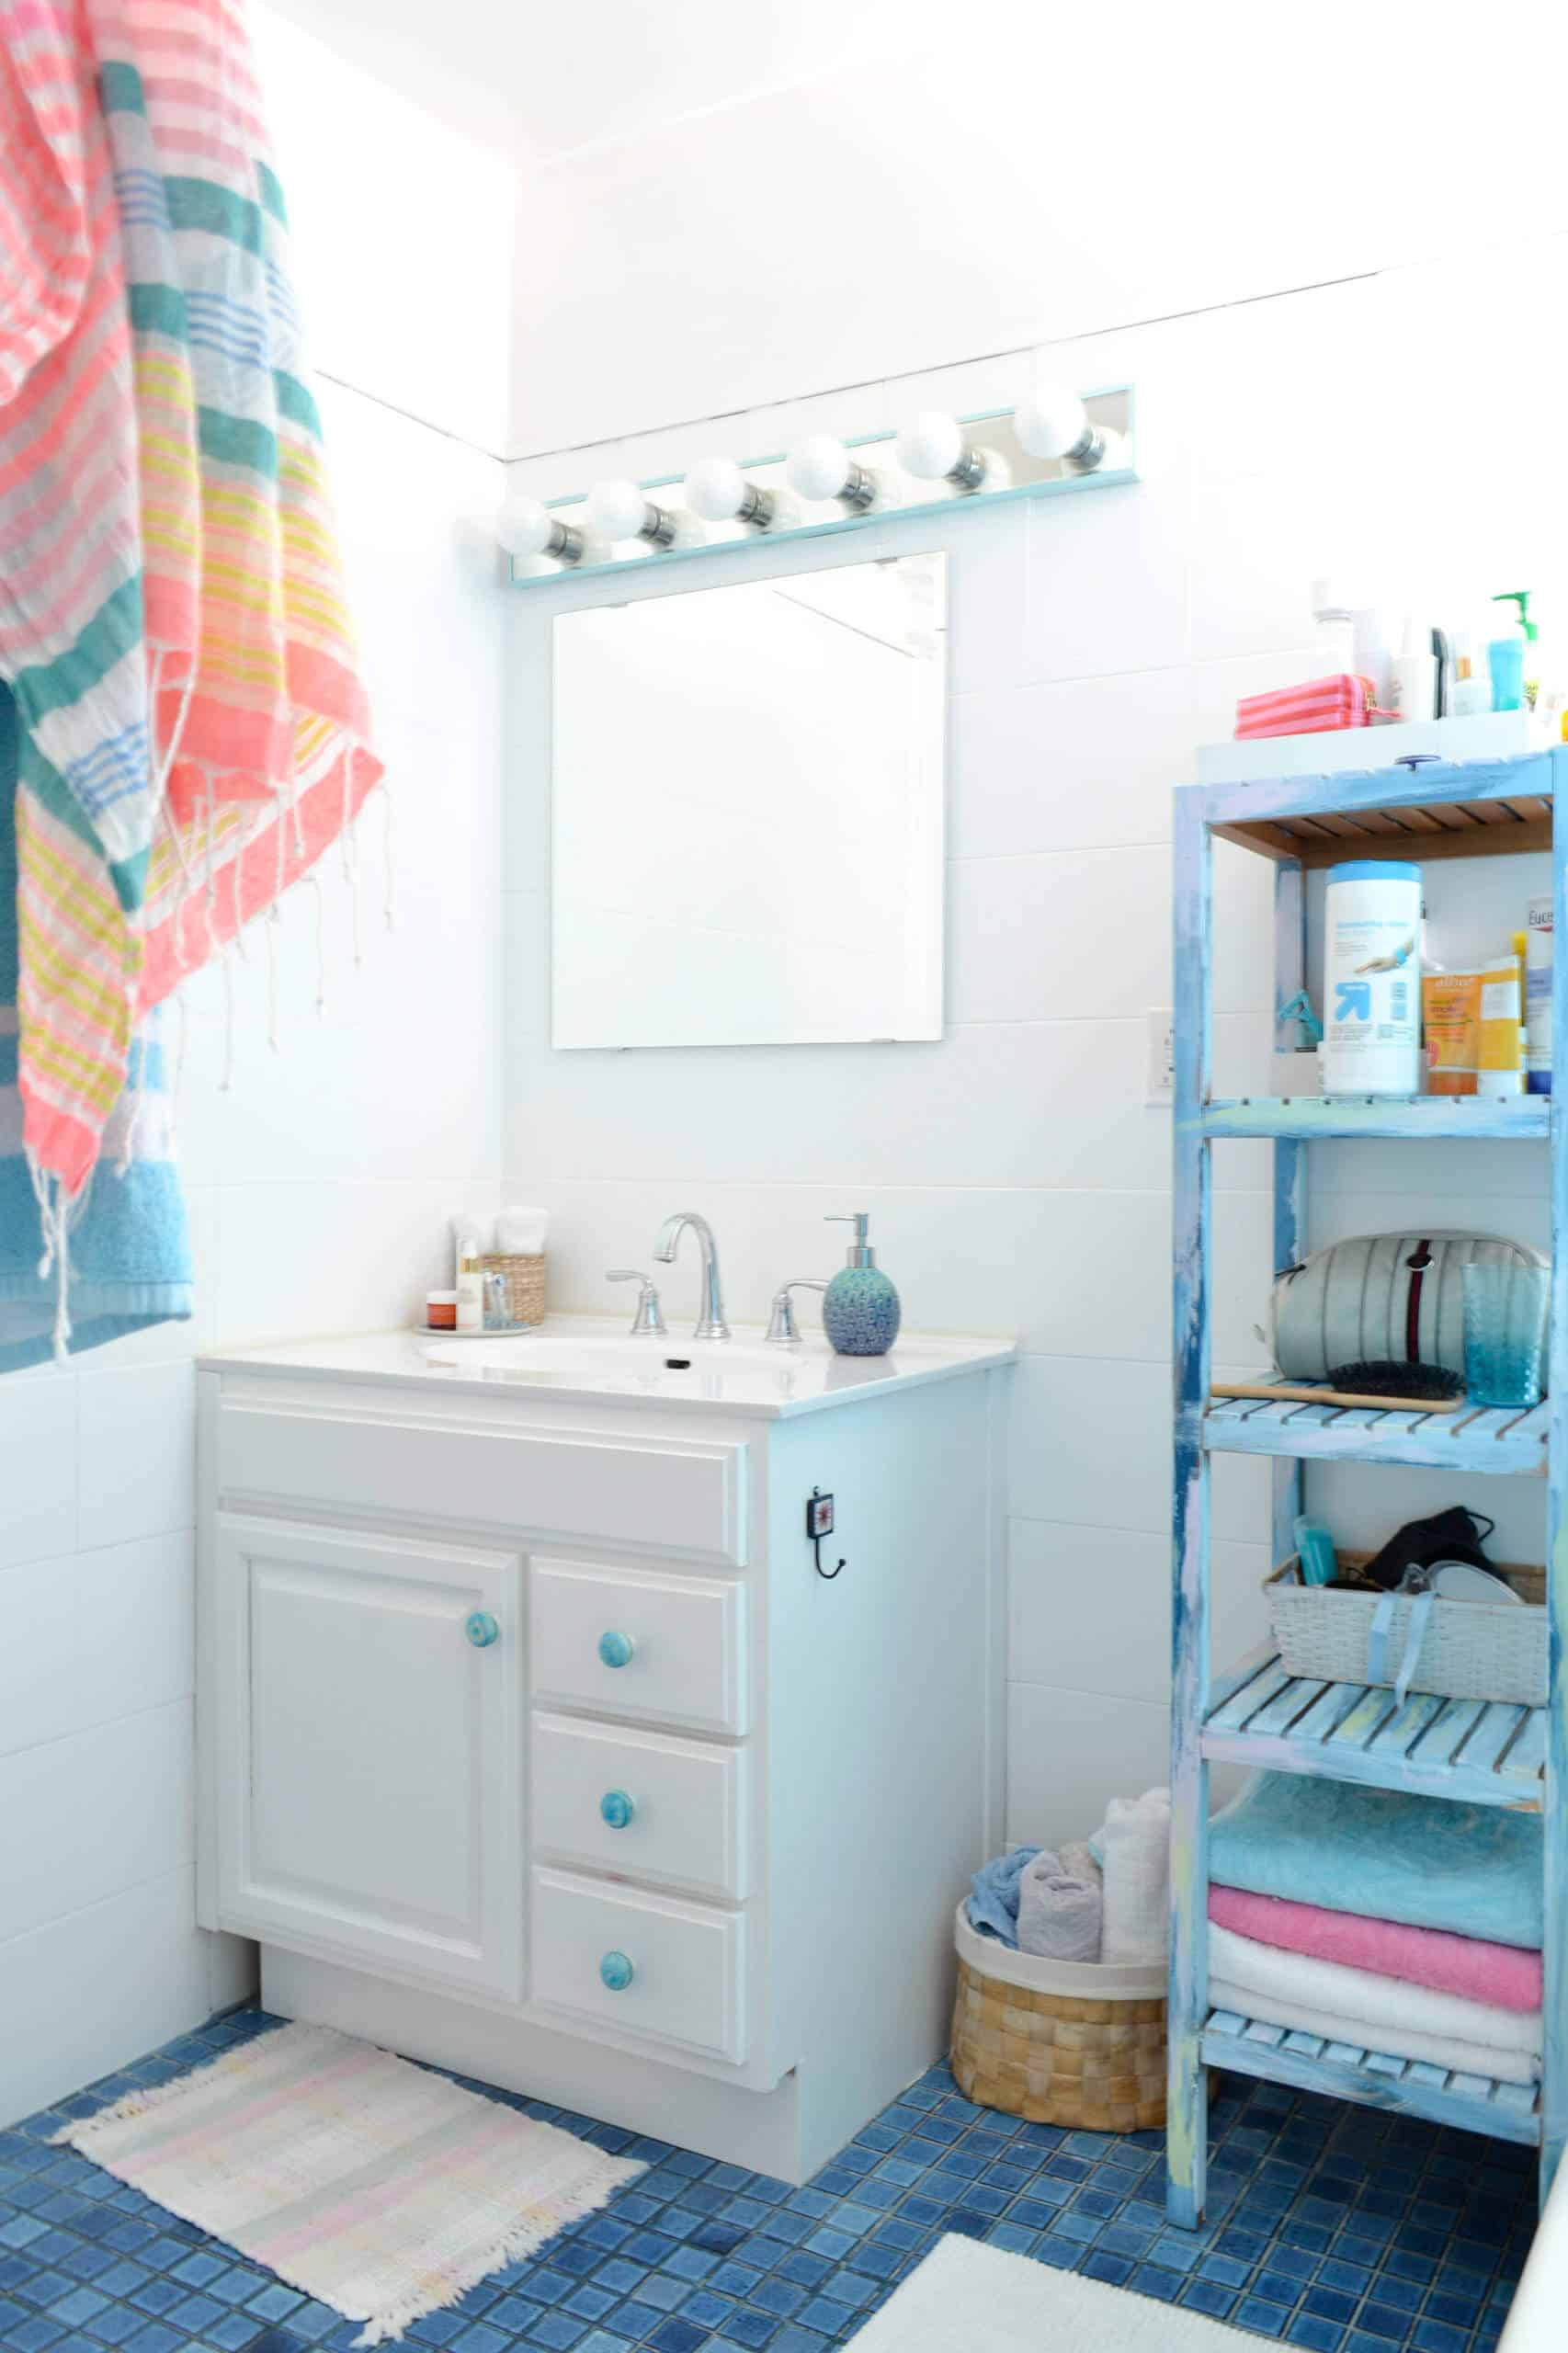 Where to Put Towels in a Small Bathroom | Decor Snob